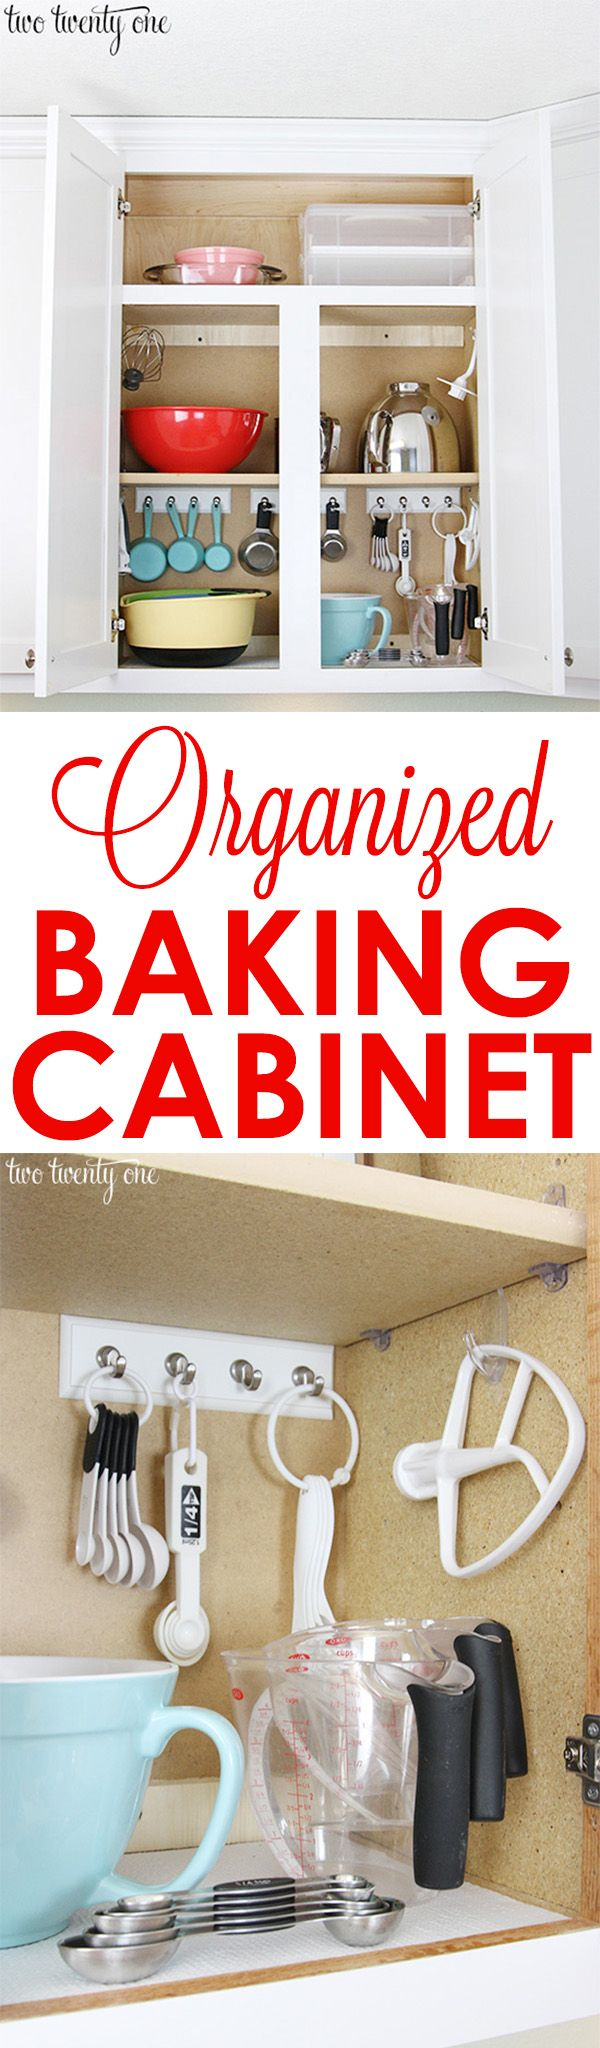 Kitchen Cupboard Organizing Organized Baking Cabinet Cabinets The Hook And Spoons